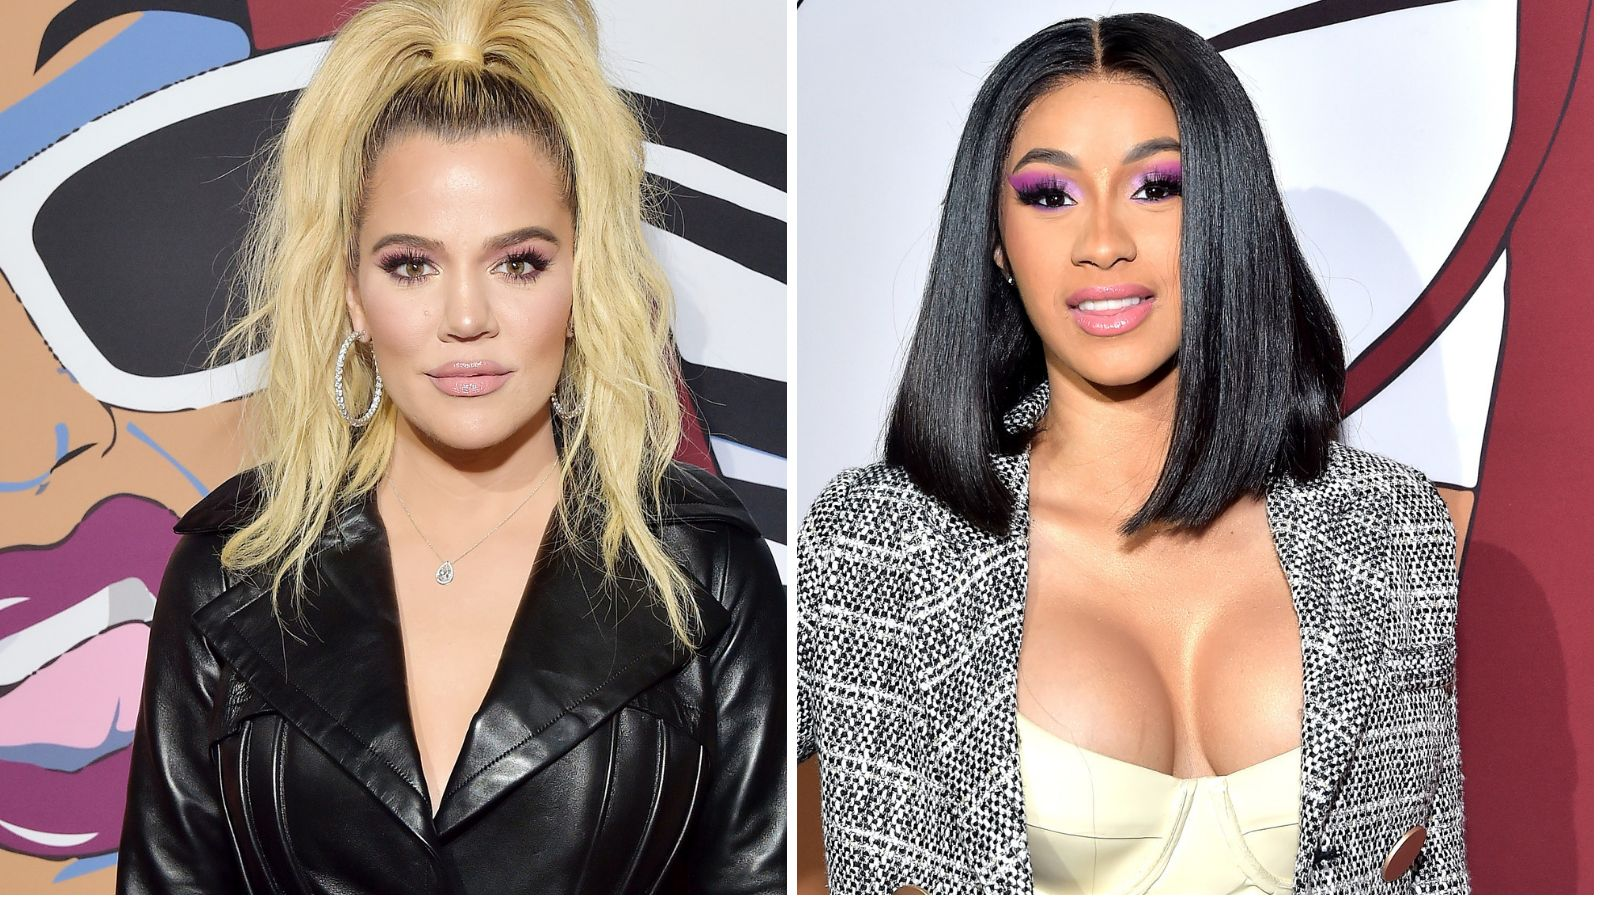 split image of Cardi B and Khloe Kardashian